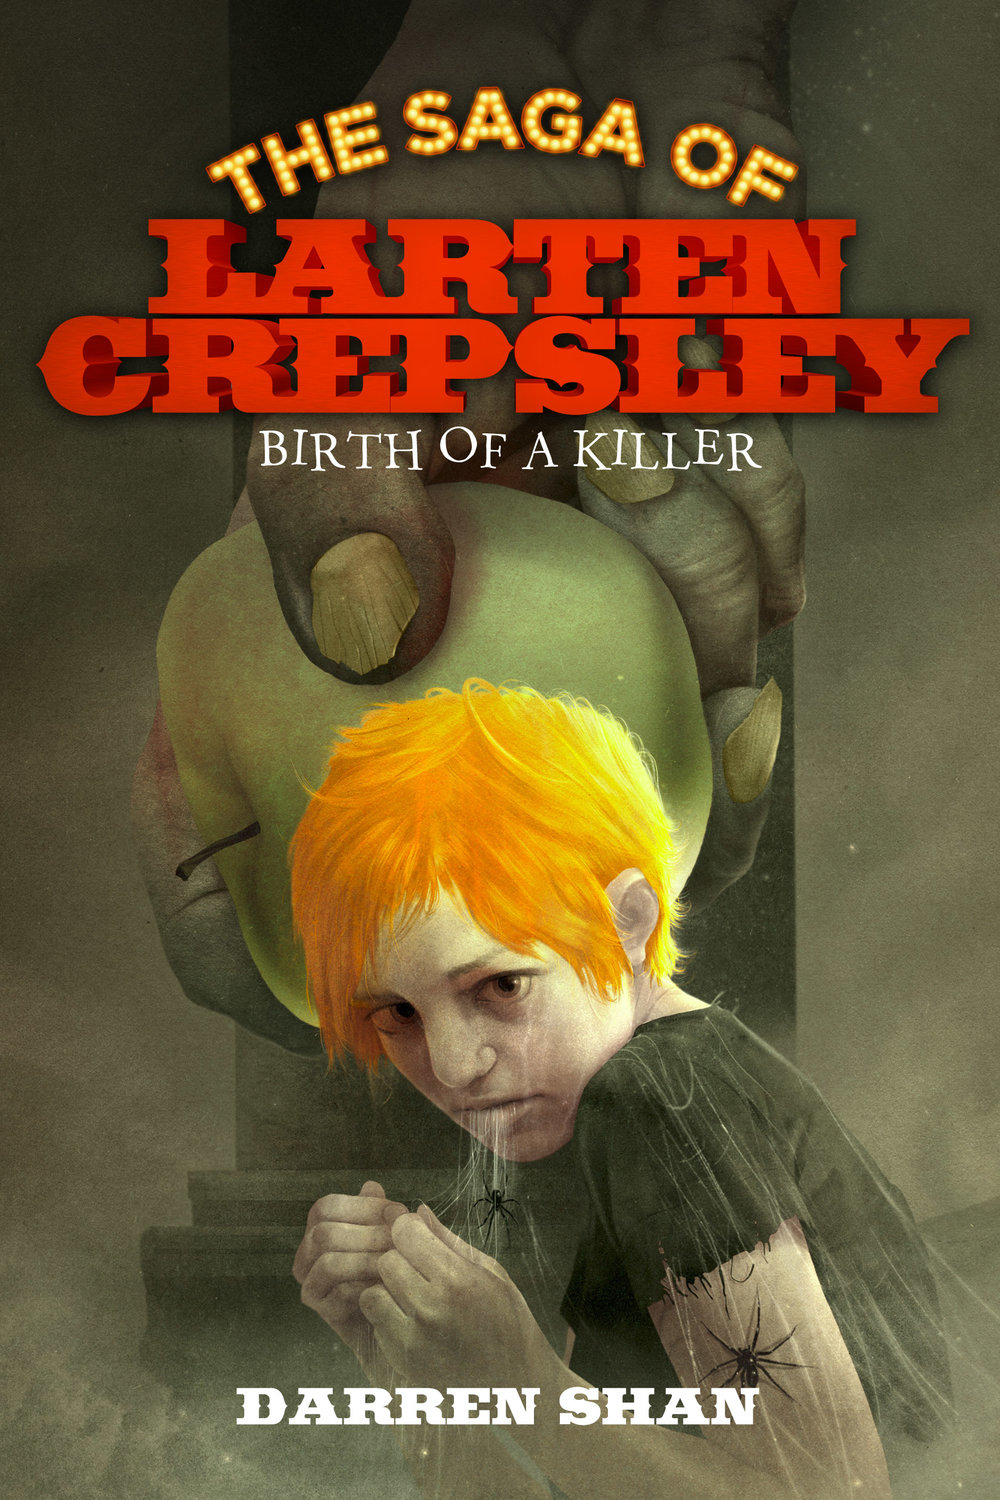 The Saga of Larten Crepsley: Birth of a Killer by Darren Shan Designed by Ben Mautner for Little, Brown Illustrated by Sam Weber